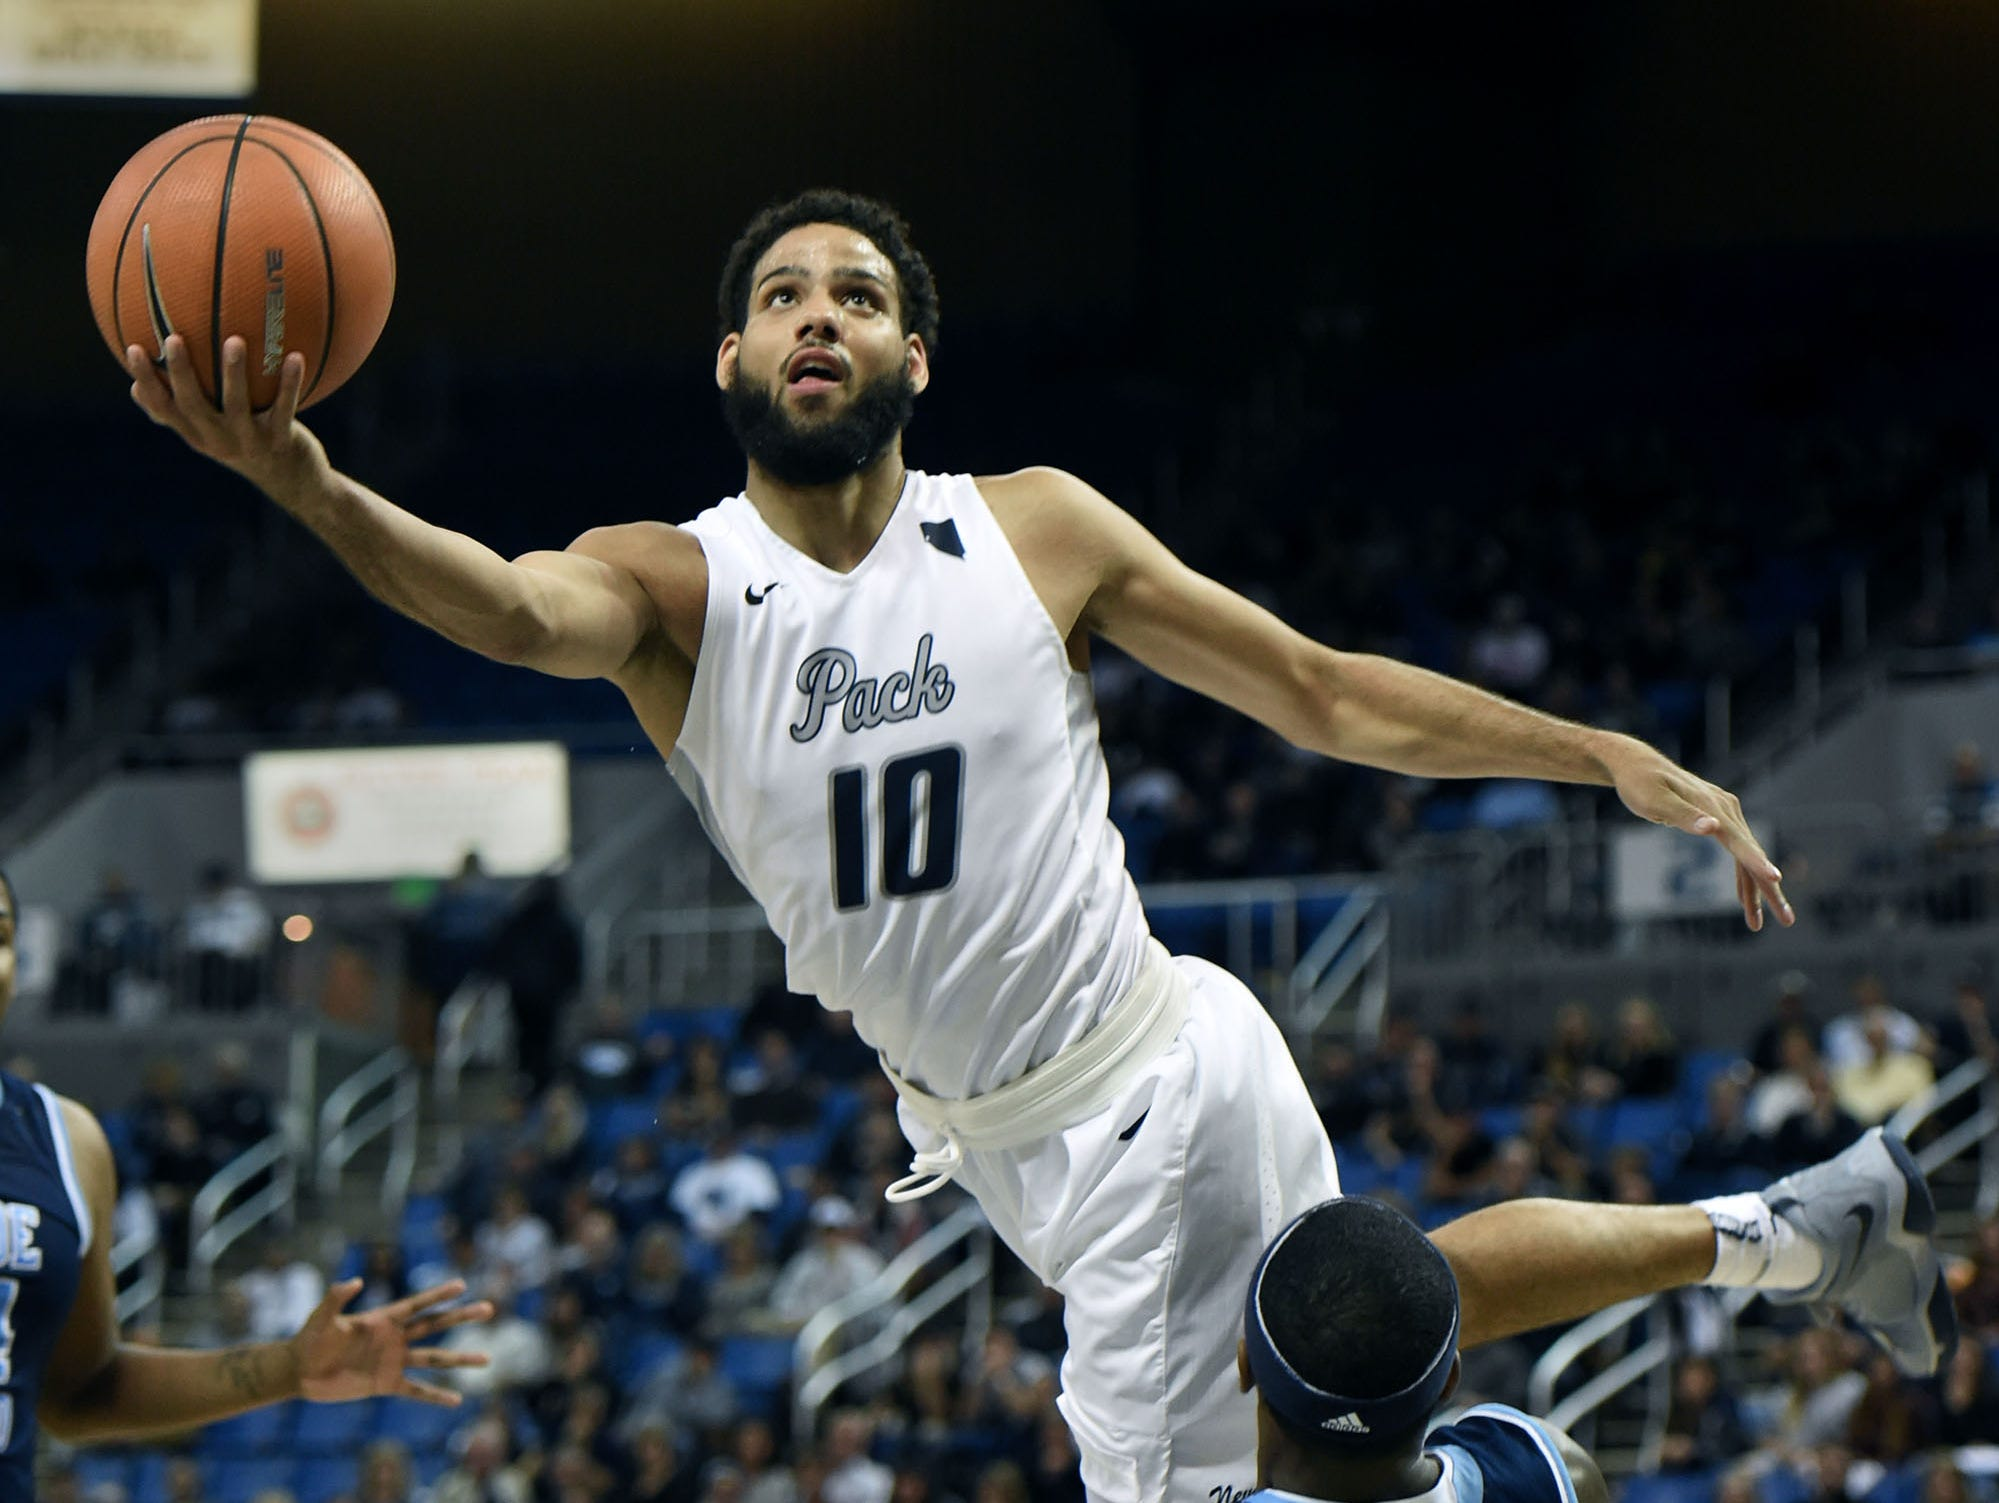 Nevada's Caleb Martin goes over Rhode's Jarvis Garrett to score in the second half of Monday's game at Lawlor Events Center on Nov. 13, 2017. Nevada won 88-81.